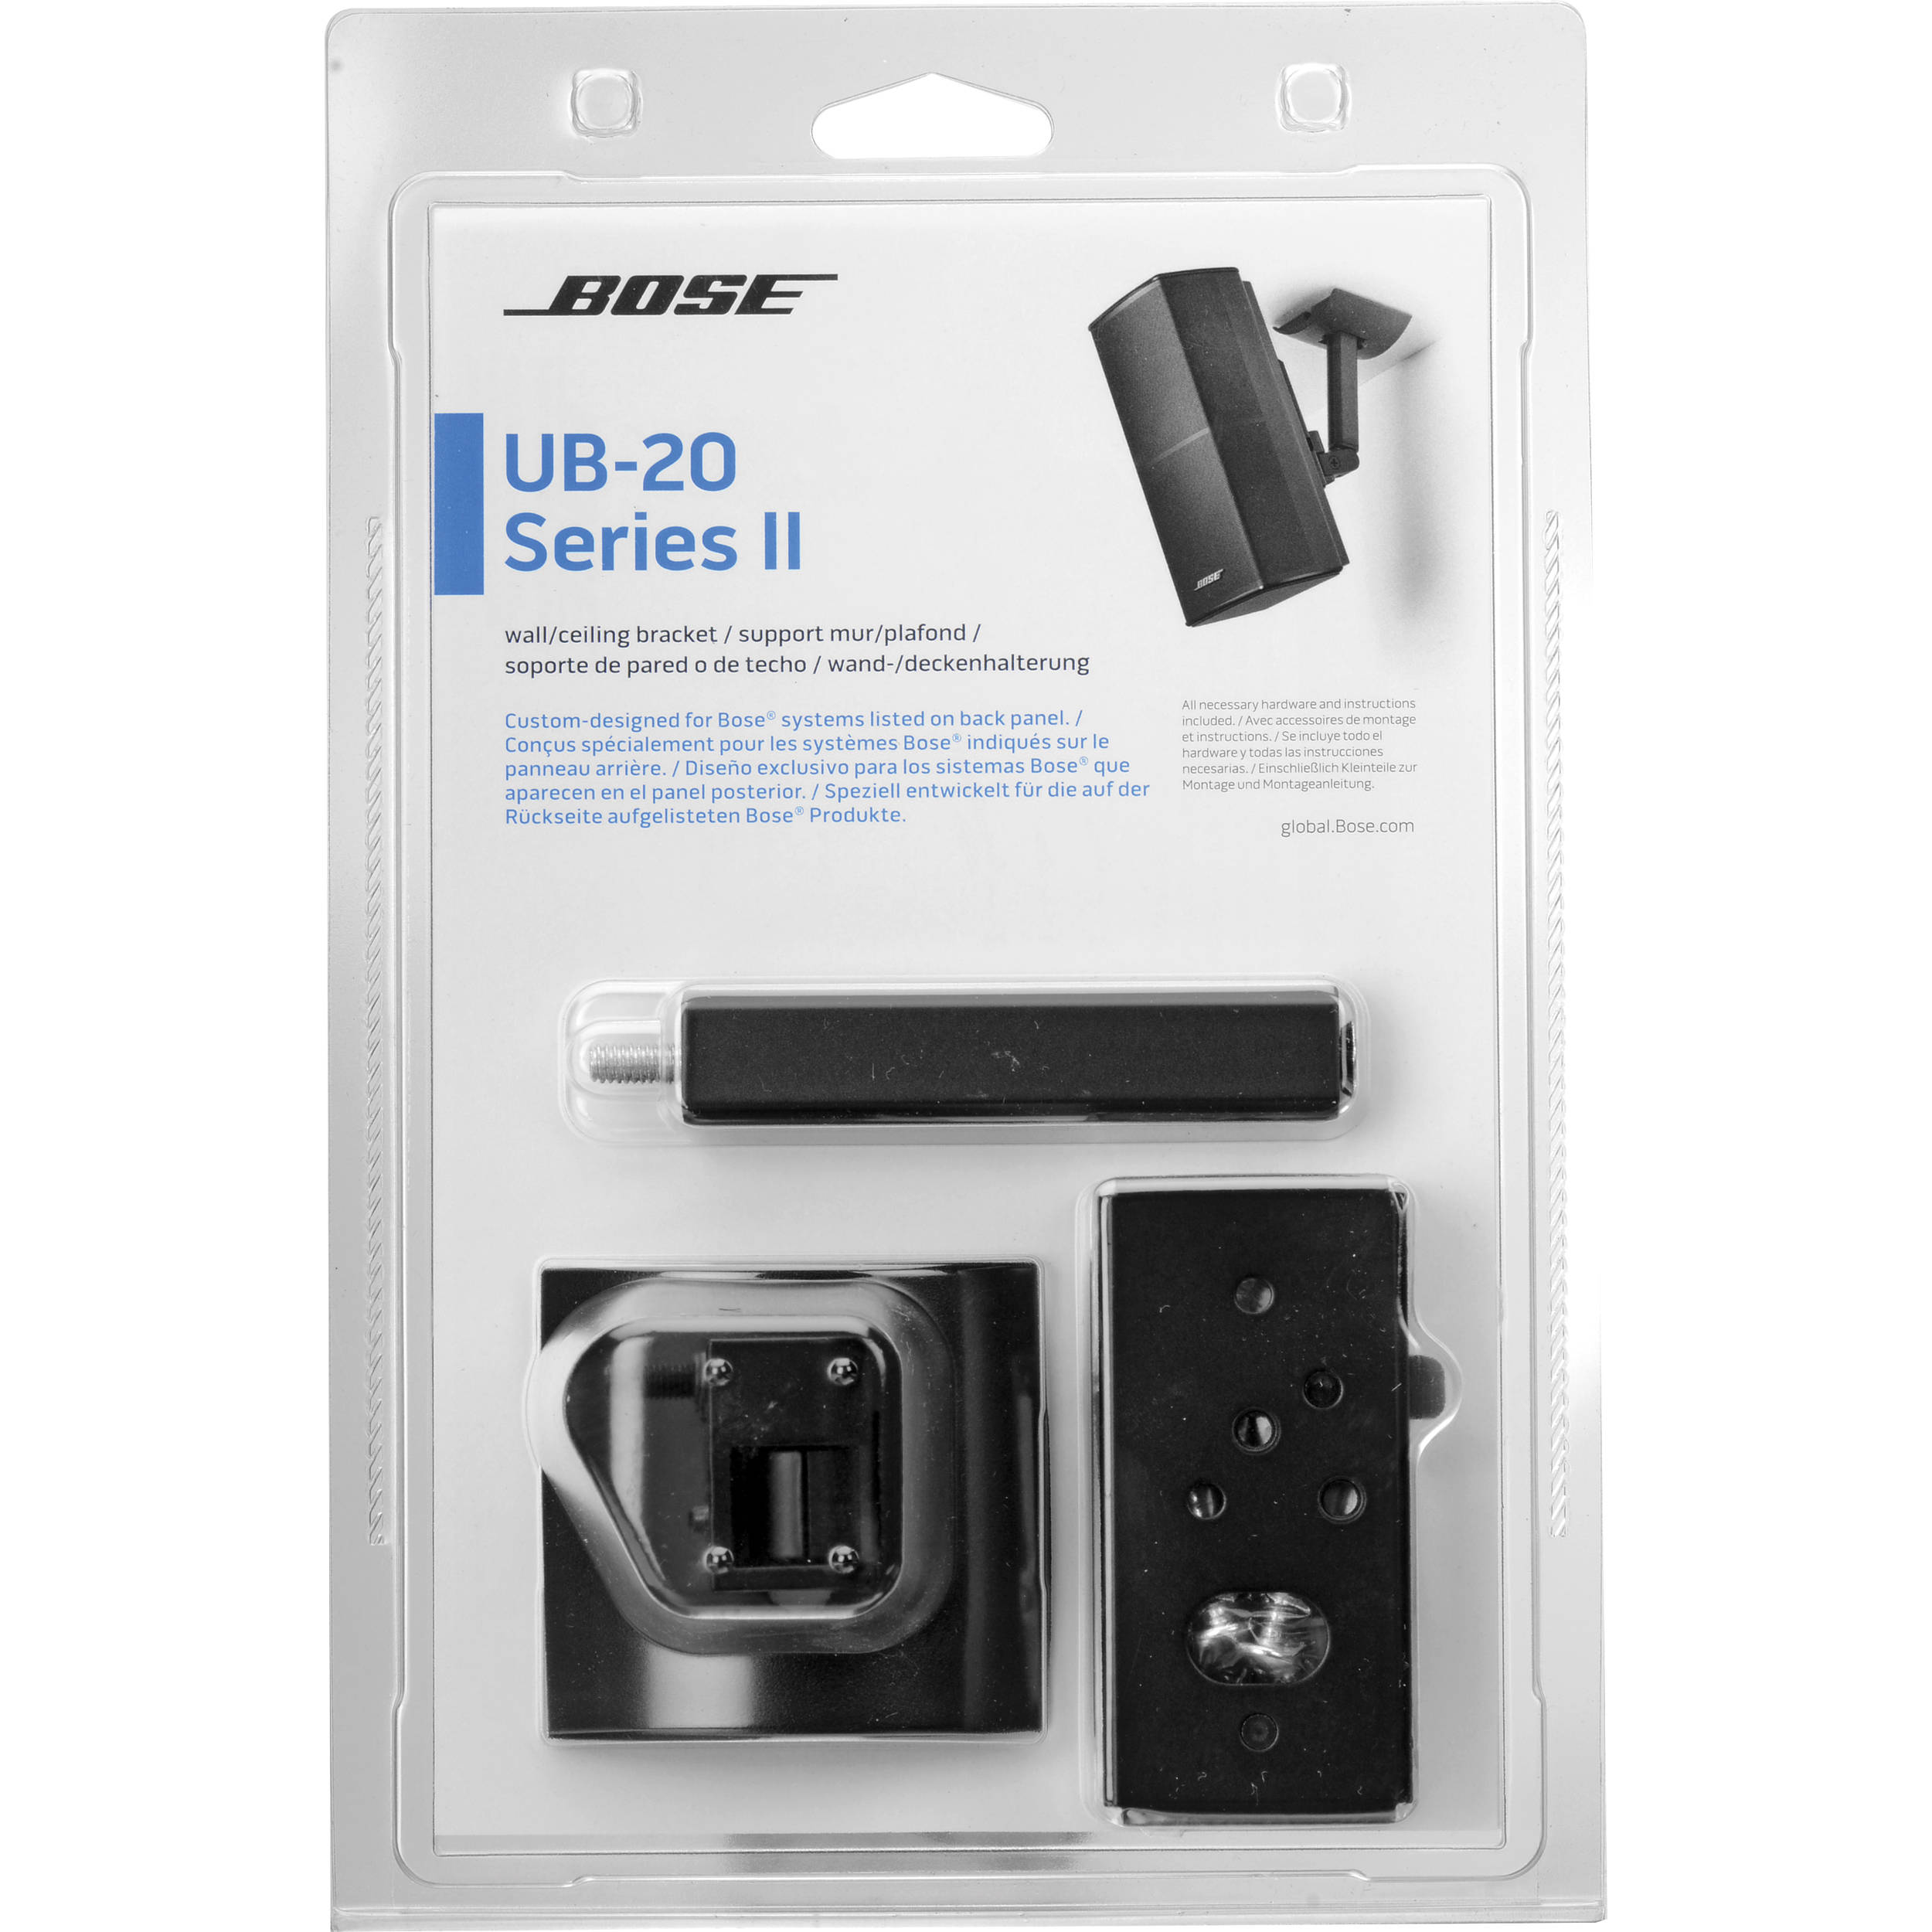 Bose Ub 20 Series Ii Wall Ceiling Bracket Black 722141 0010